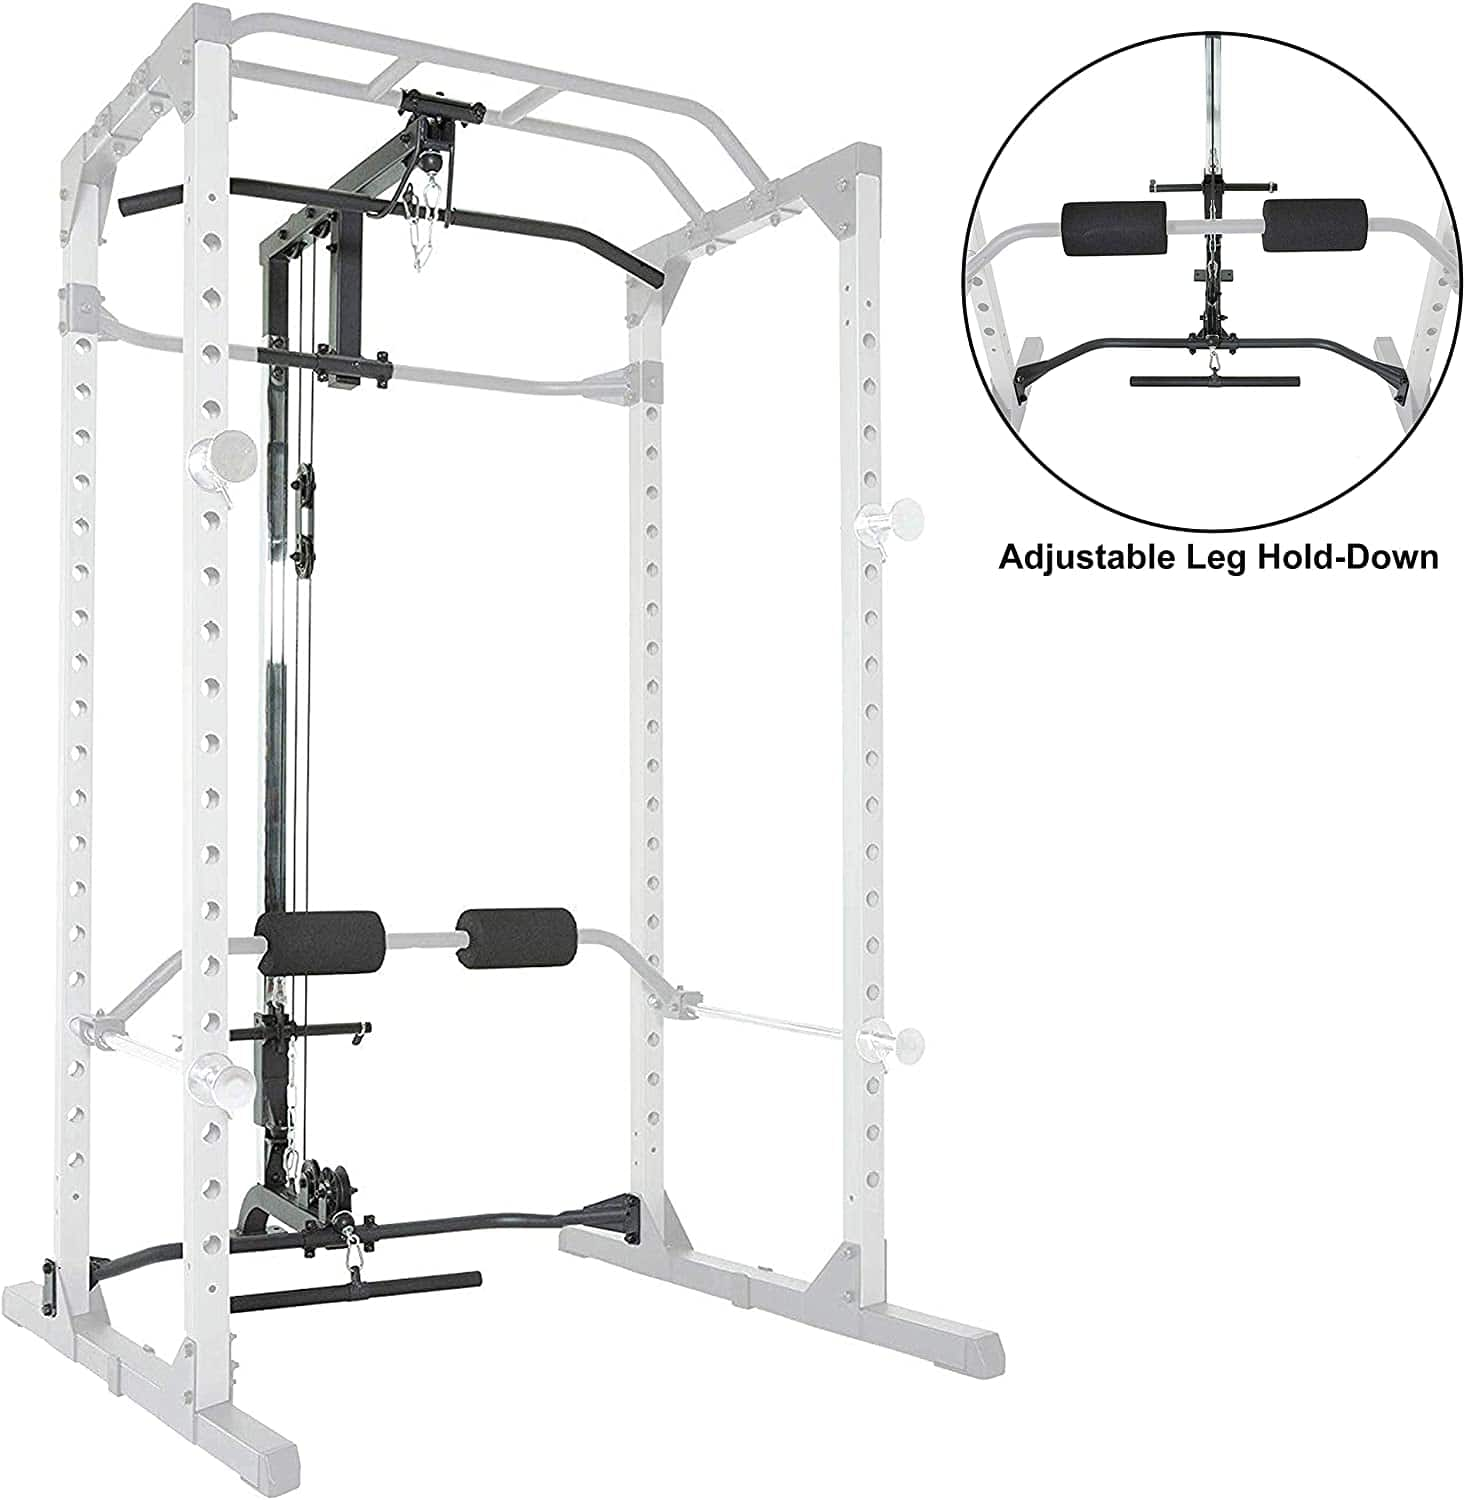 Amazon.com : Fitness Reality Lat Pull-down for 810XLT Super Max Power Cage : Sports & Outdoors $229